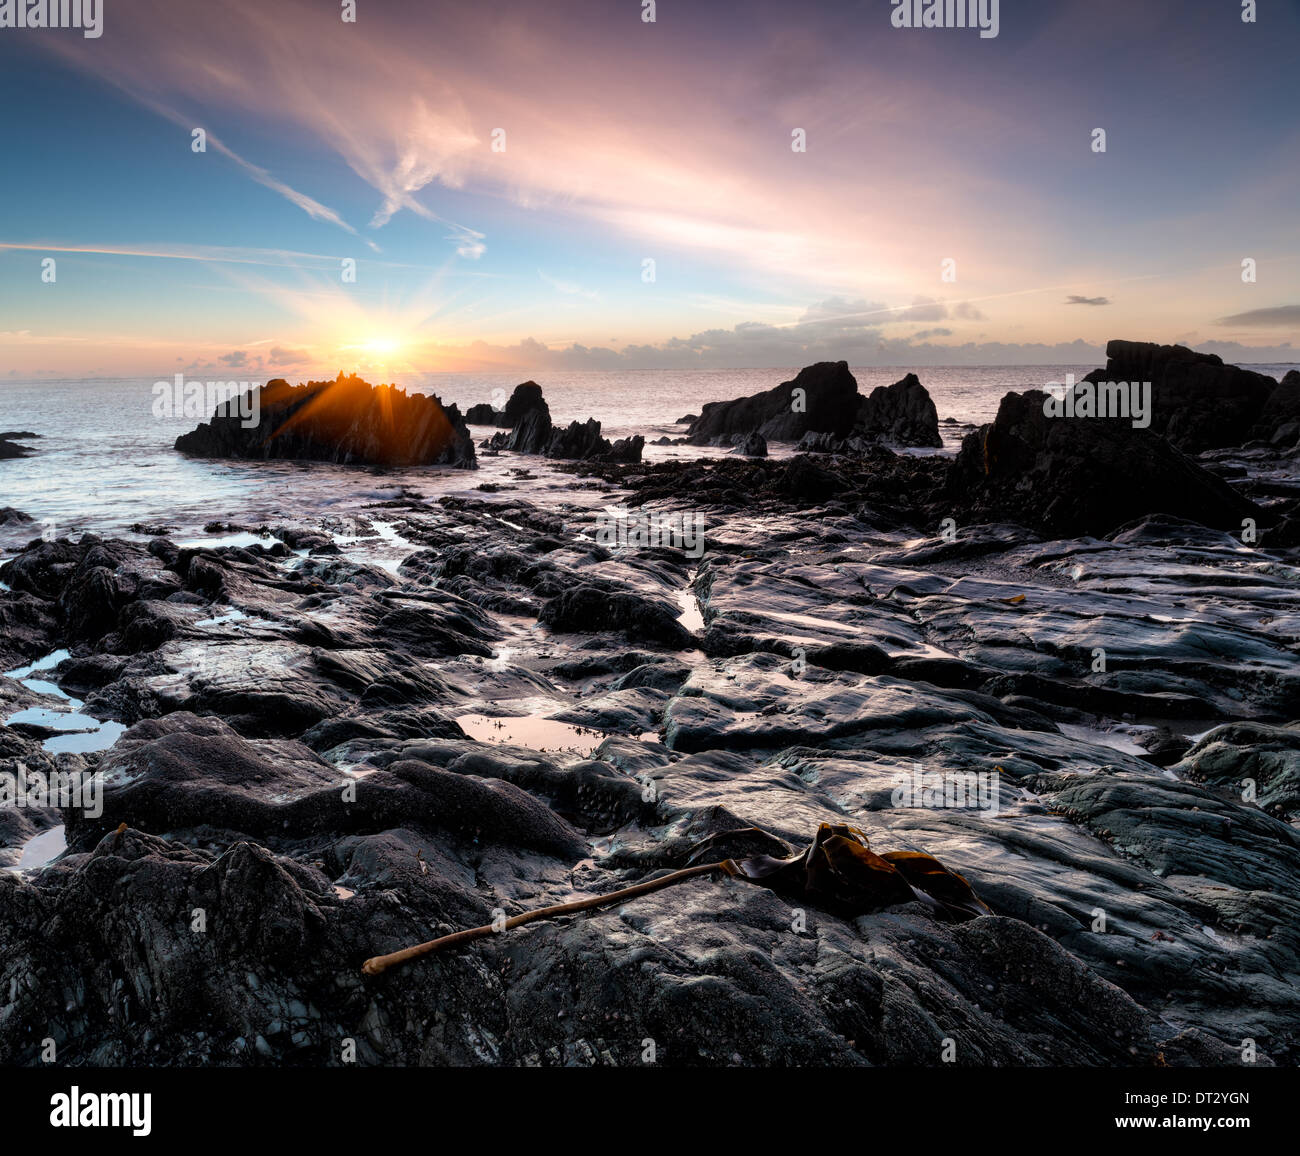 Ocean sunrise on a rocky beach at Looe in south Cornwall - Stock Image